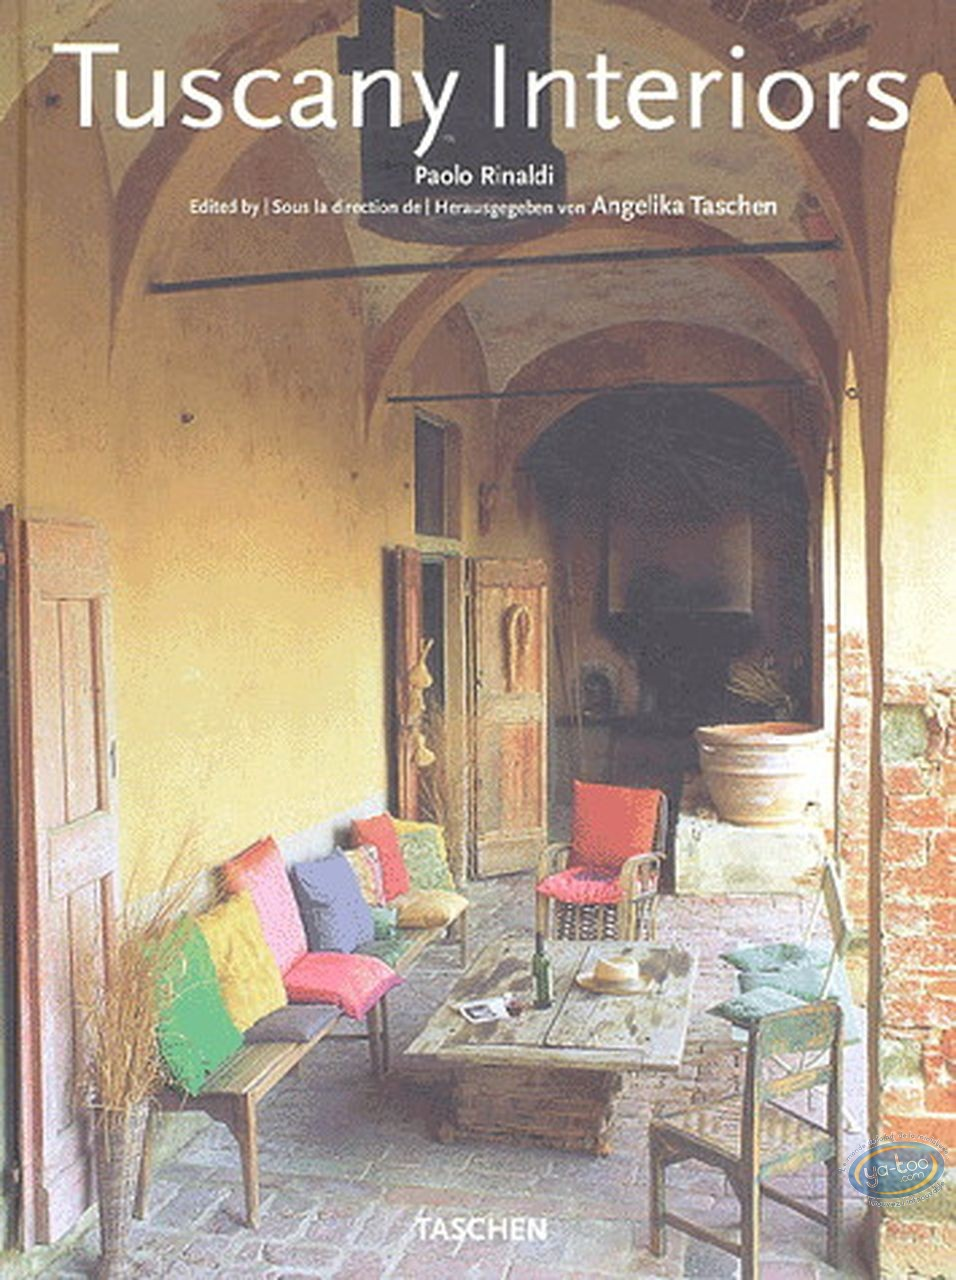 Book, Tuscany Interiors